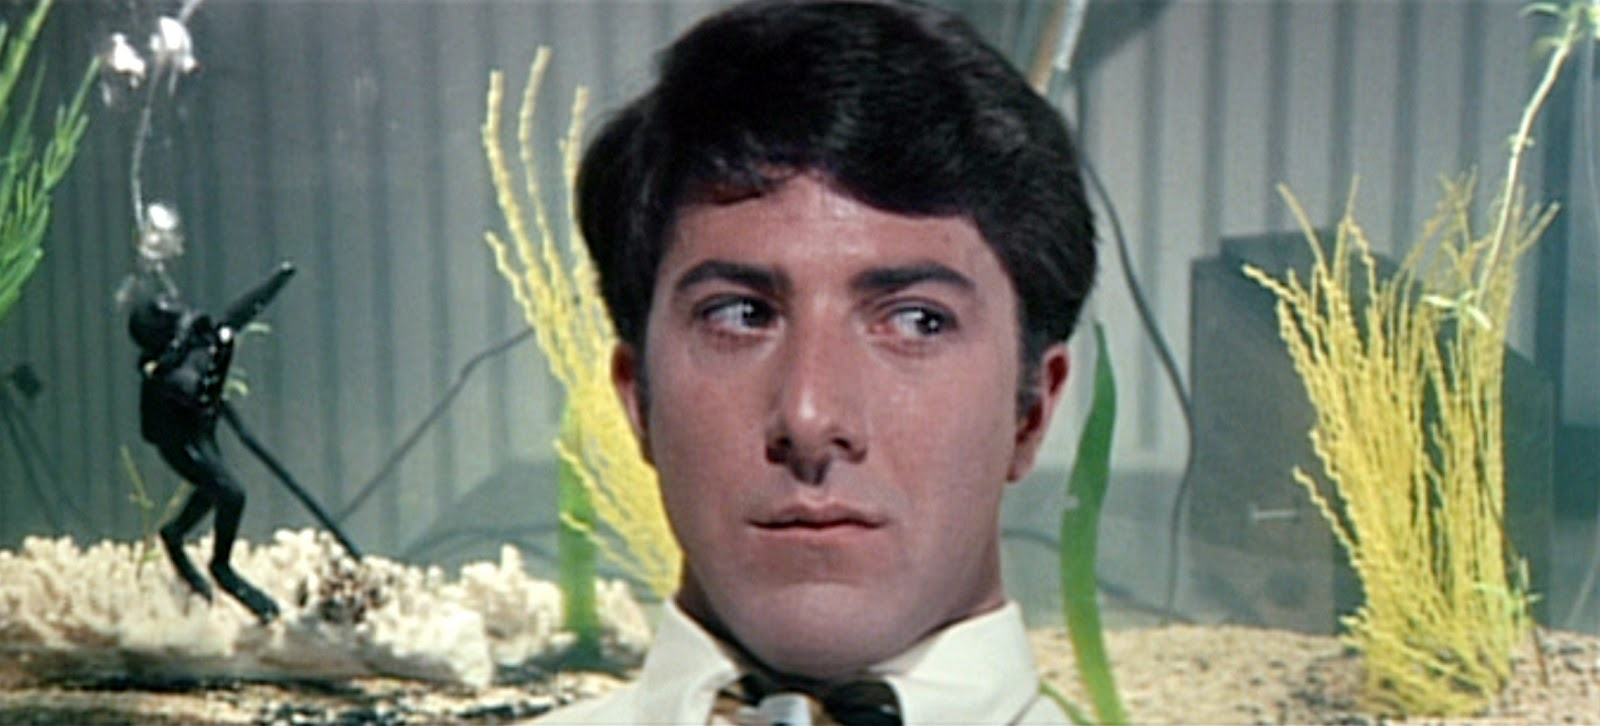 Dustin Hoffman The Graduate Tshirts